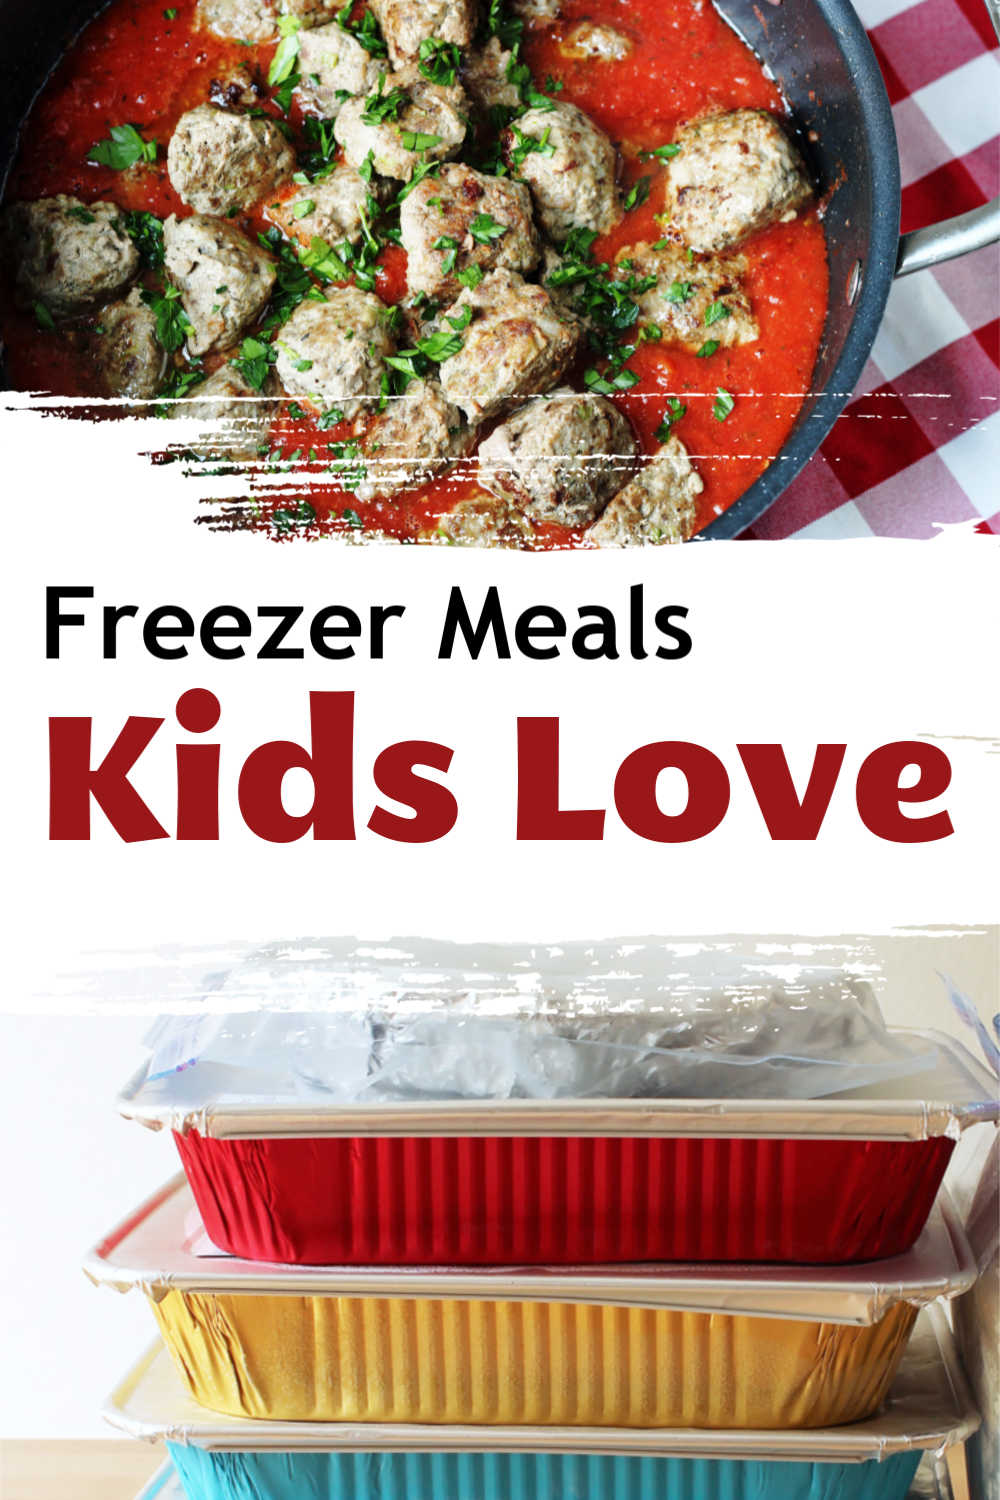 pot of meatballs and sauce, with stacked freezer meals